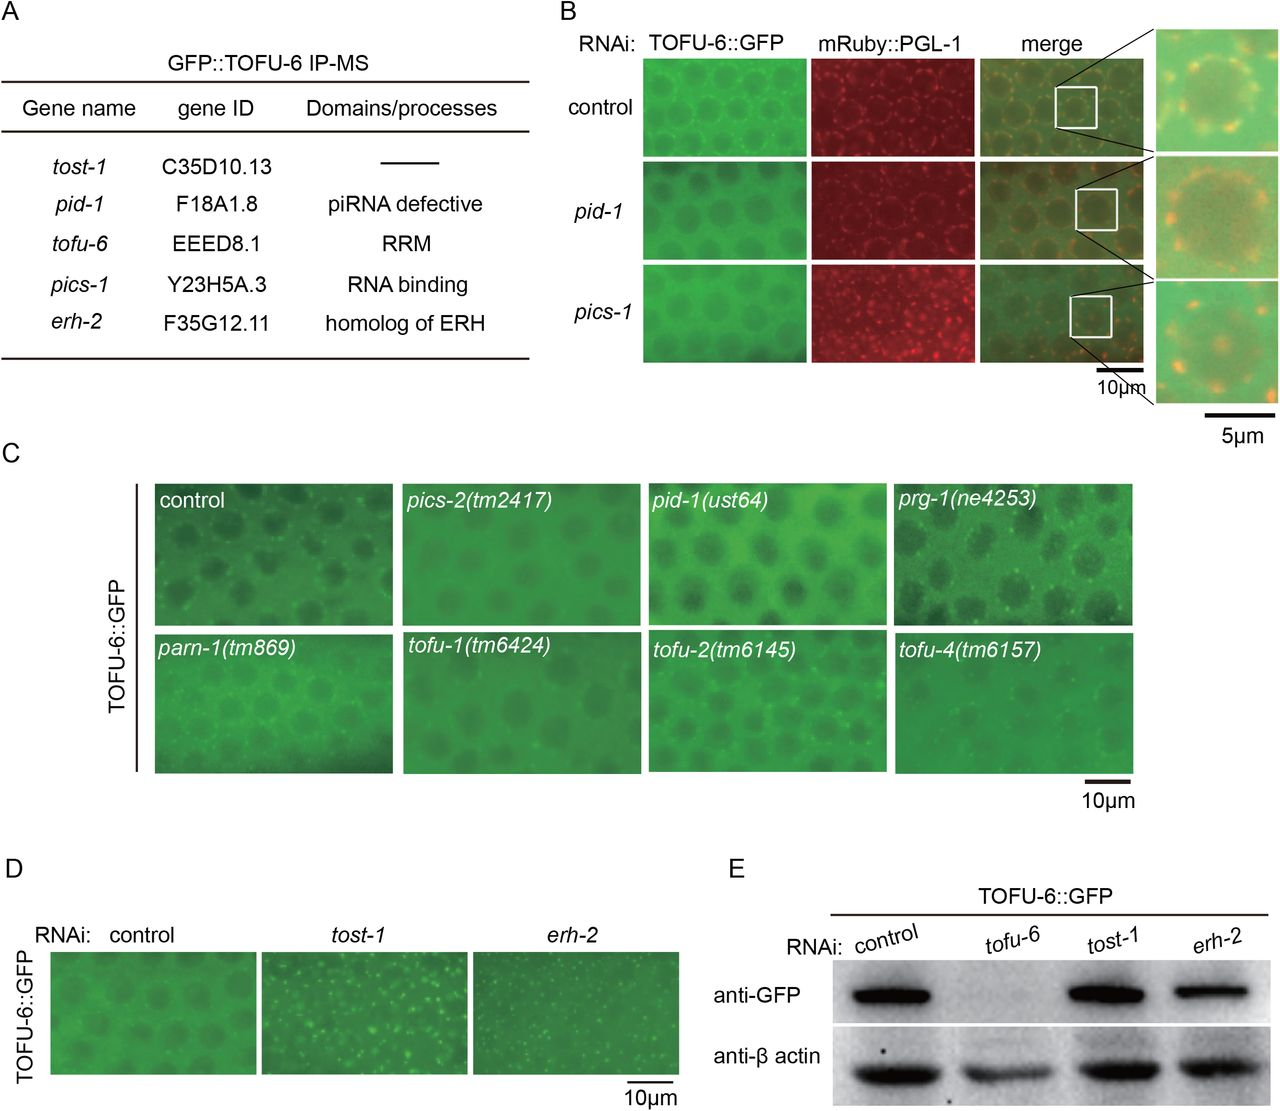 Identification of TOFU-6 binding proteins by functional proteomics. (A) Summary of IP-MS followed by feeding RNAi experiments of TOFU-6::GFP. (B) Images of TOFU-6::GFP and P-granule marker mRuby::PGL-1 after RNAi targeting pid-1 and pics-1 . (C) Images of TOFU-6::GFP in indicated animals. (D) Images of TOFU-6::GFP after RNAi targeting tost-1 and erh-2 . (E) Western blotting of TOFU-6::GFP after RNAi targeting tost-1 and erh-2 .